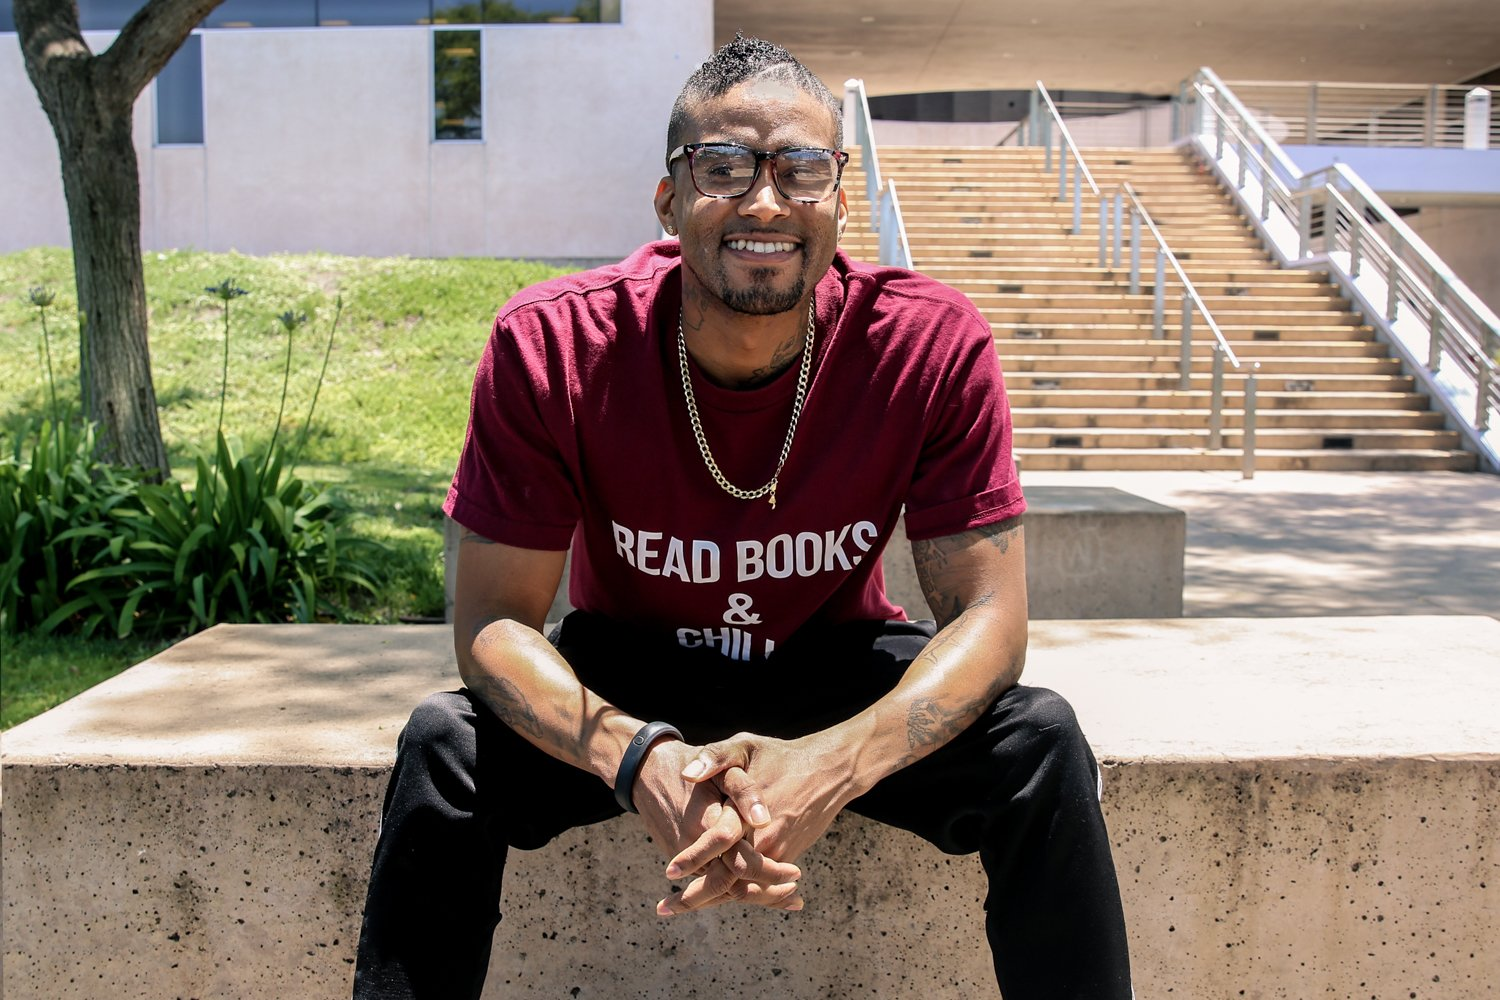 Today Steve Whiting graduates with a full-ride to UC San Diego, leaving his life as a gang member behind him. 👨‍🎓🎓🐾 https://t.co/CbO5cOpe0D https://t.co/ae8JEcMC5X